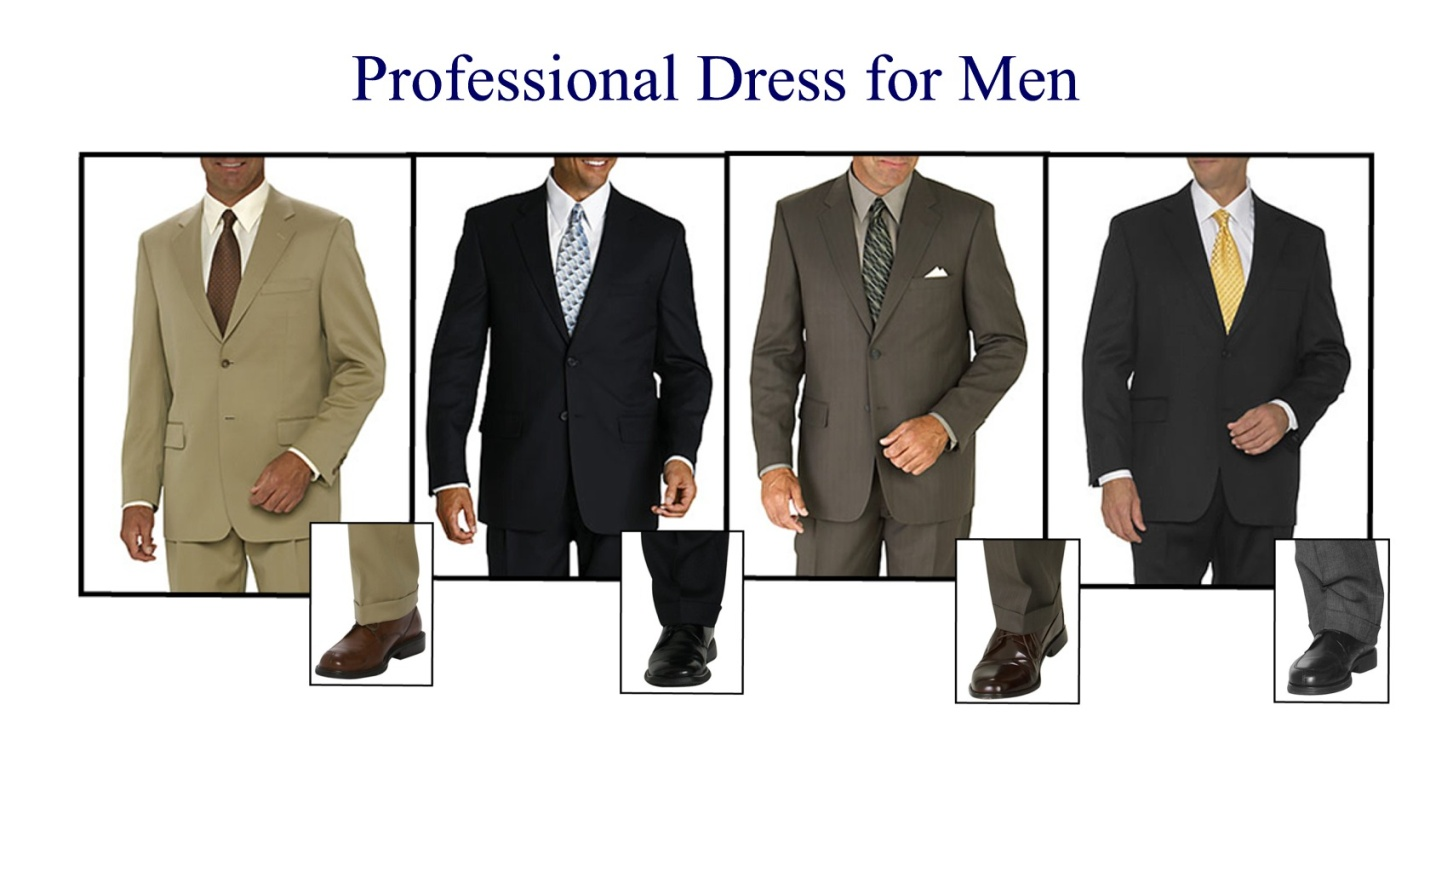 formal professional dress code